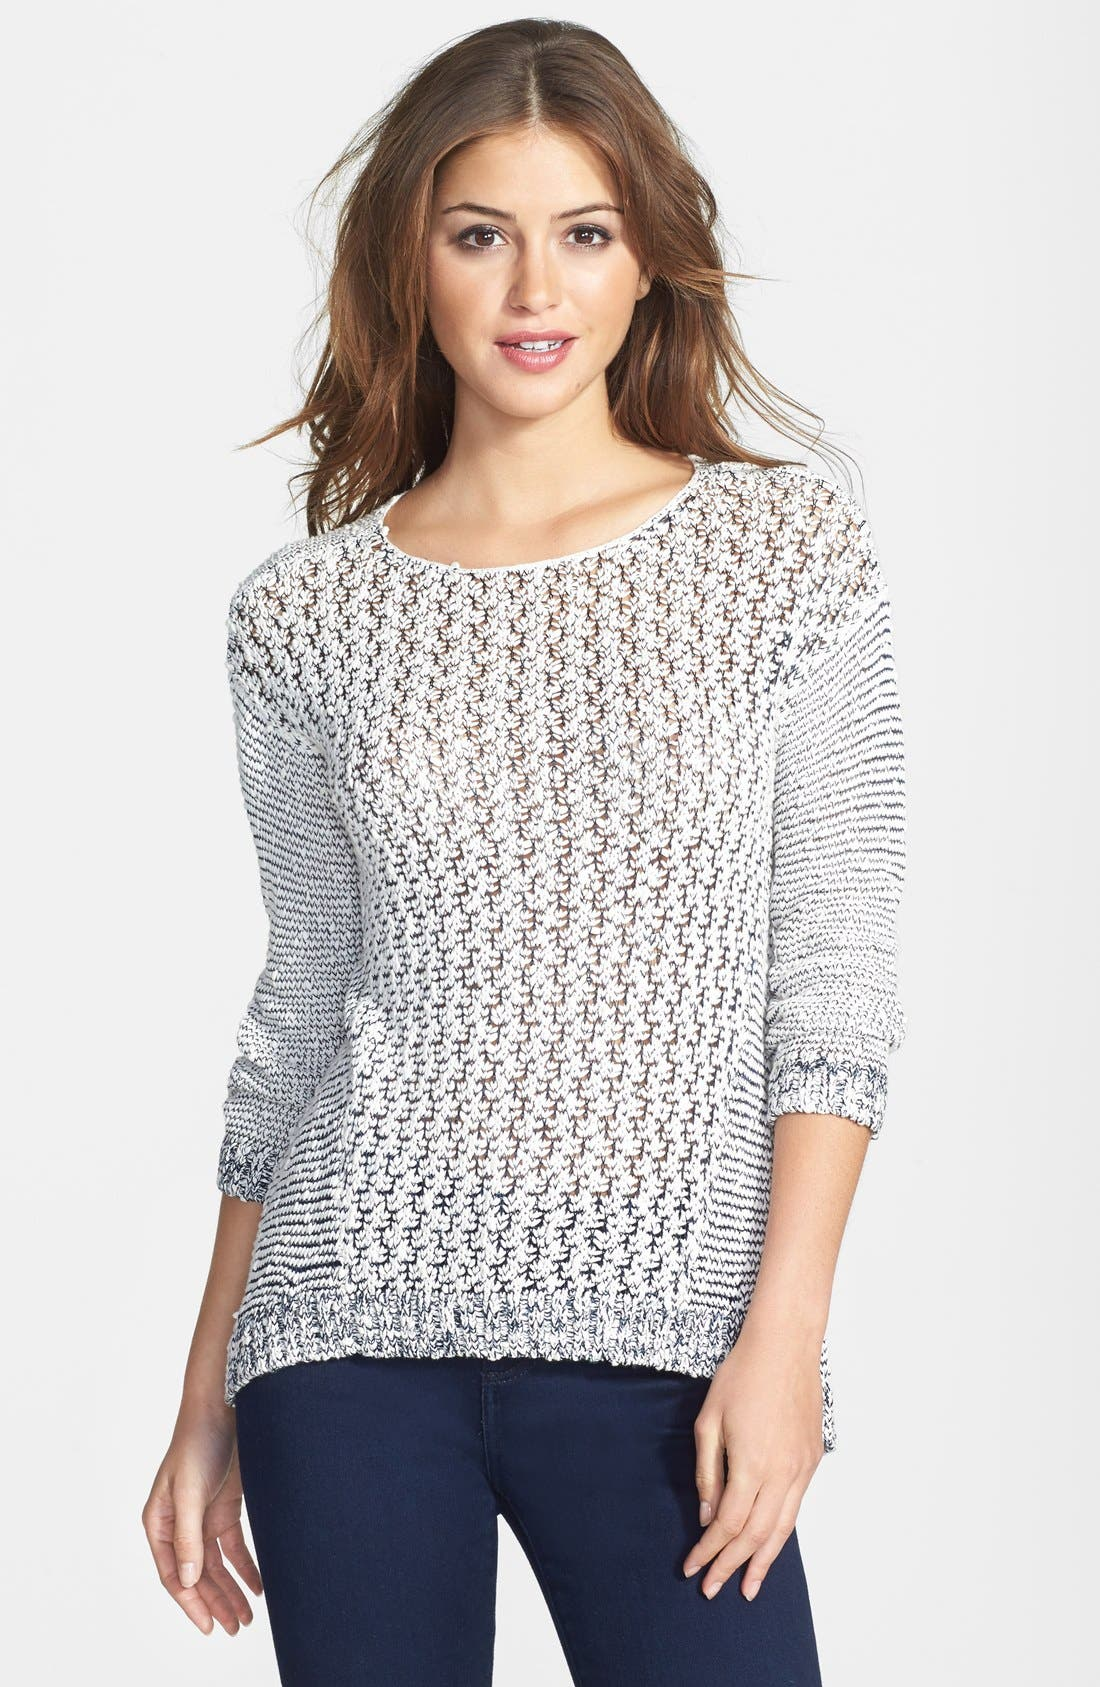 Alternate Image 1 Selected - Two by Vince Camuto Slub Cotton Blend Tape Yarn Sweater